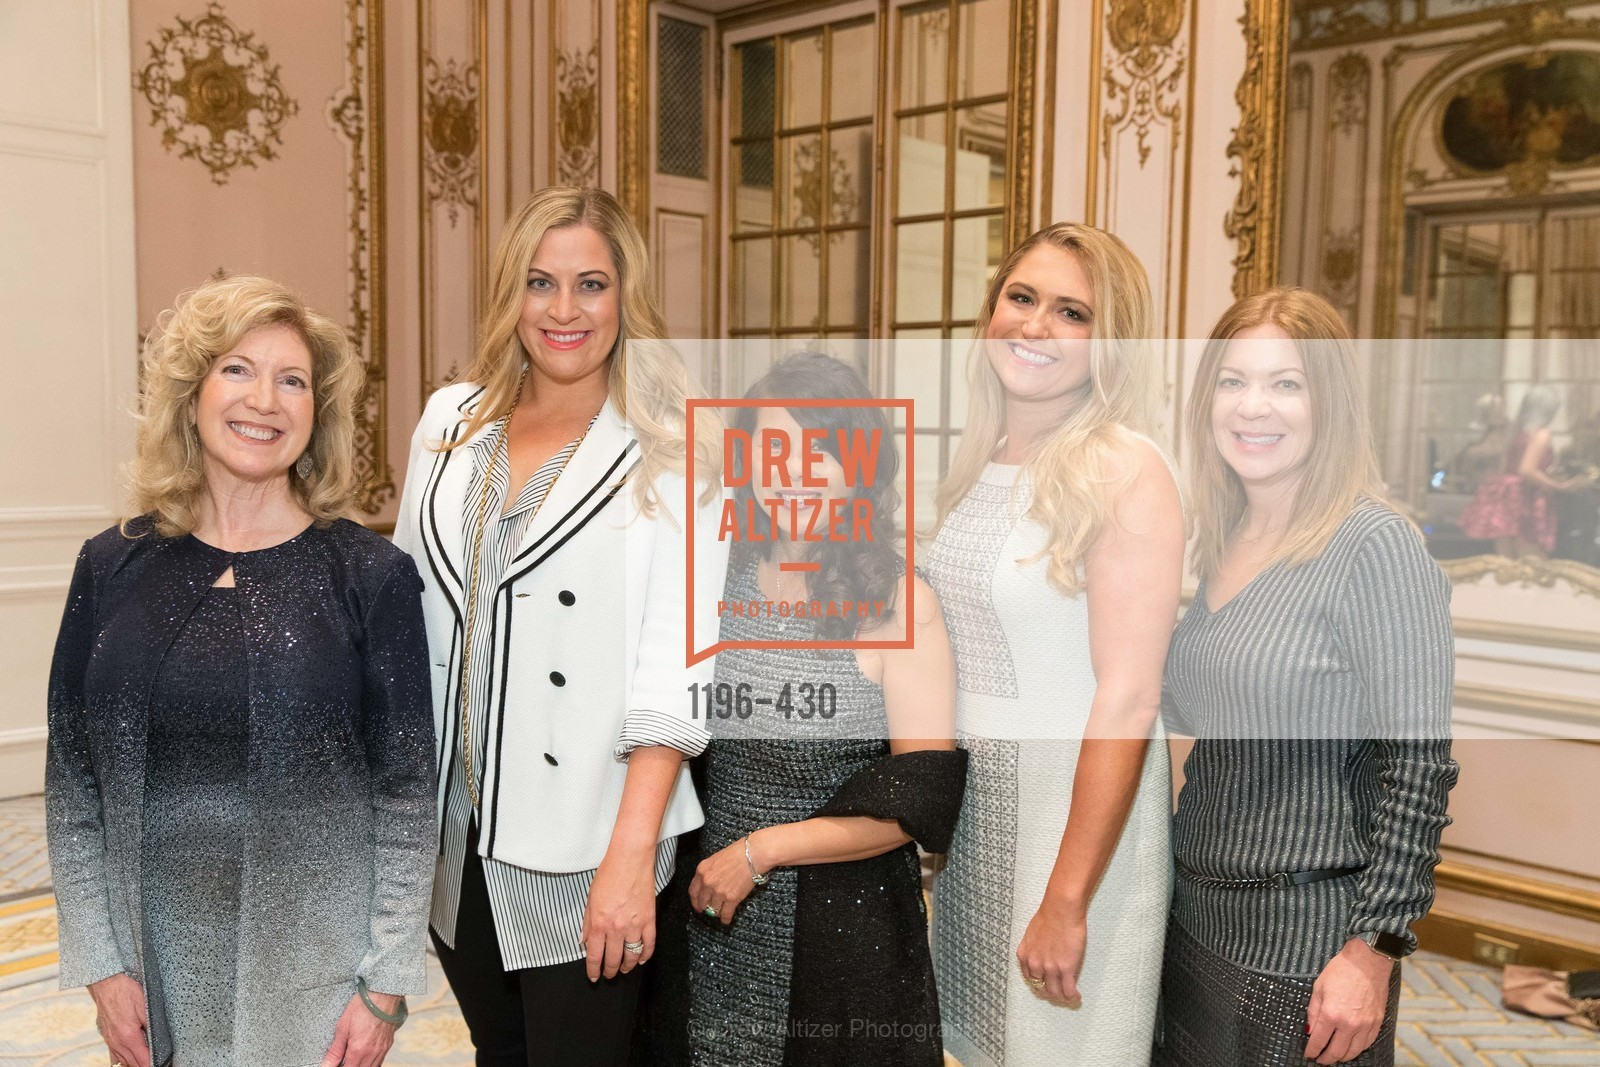 Celeste Woo, Maggie Hazelrig, SharonSeto, Chelsey Seippel, Lisa Edwards, The Arthritis Foundation Presents FASHION FIGHTS ARTHRITIS featuring St. John, Fairmont Hotel, Ballroom. 950 Mason Street, October 30th, 2015,Drew Altizer, Drew Altizer Photography, full-service agency, private events, San Francisco photographer, photographer california